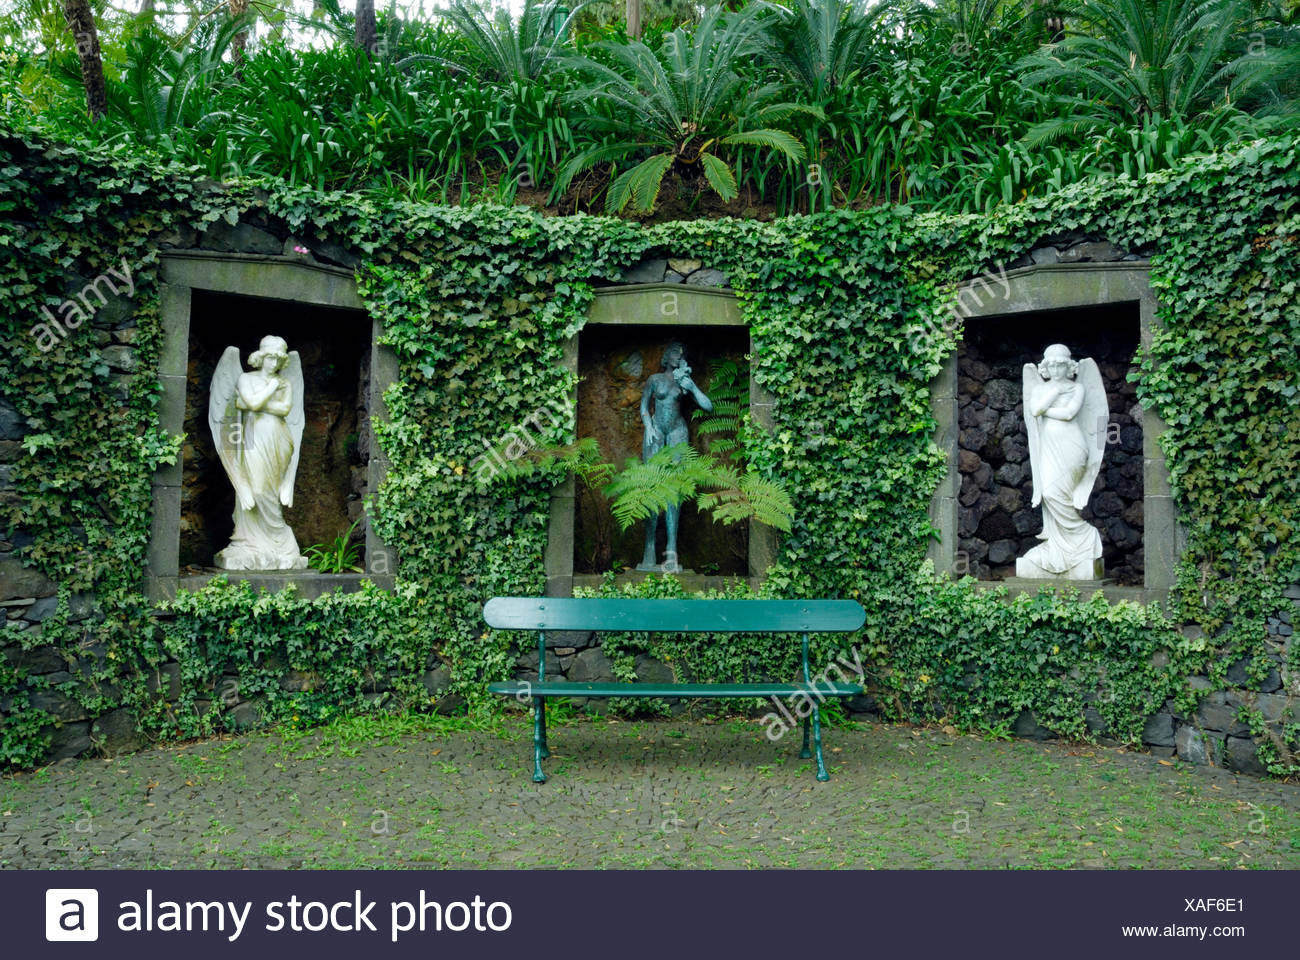 Superbe STATUES IN ALCOVES MONTE PALACE TROPICAL GARDEN MADEIRA